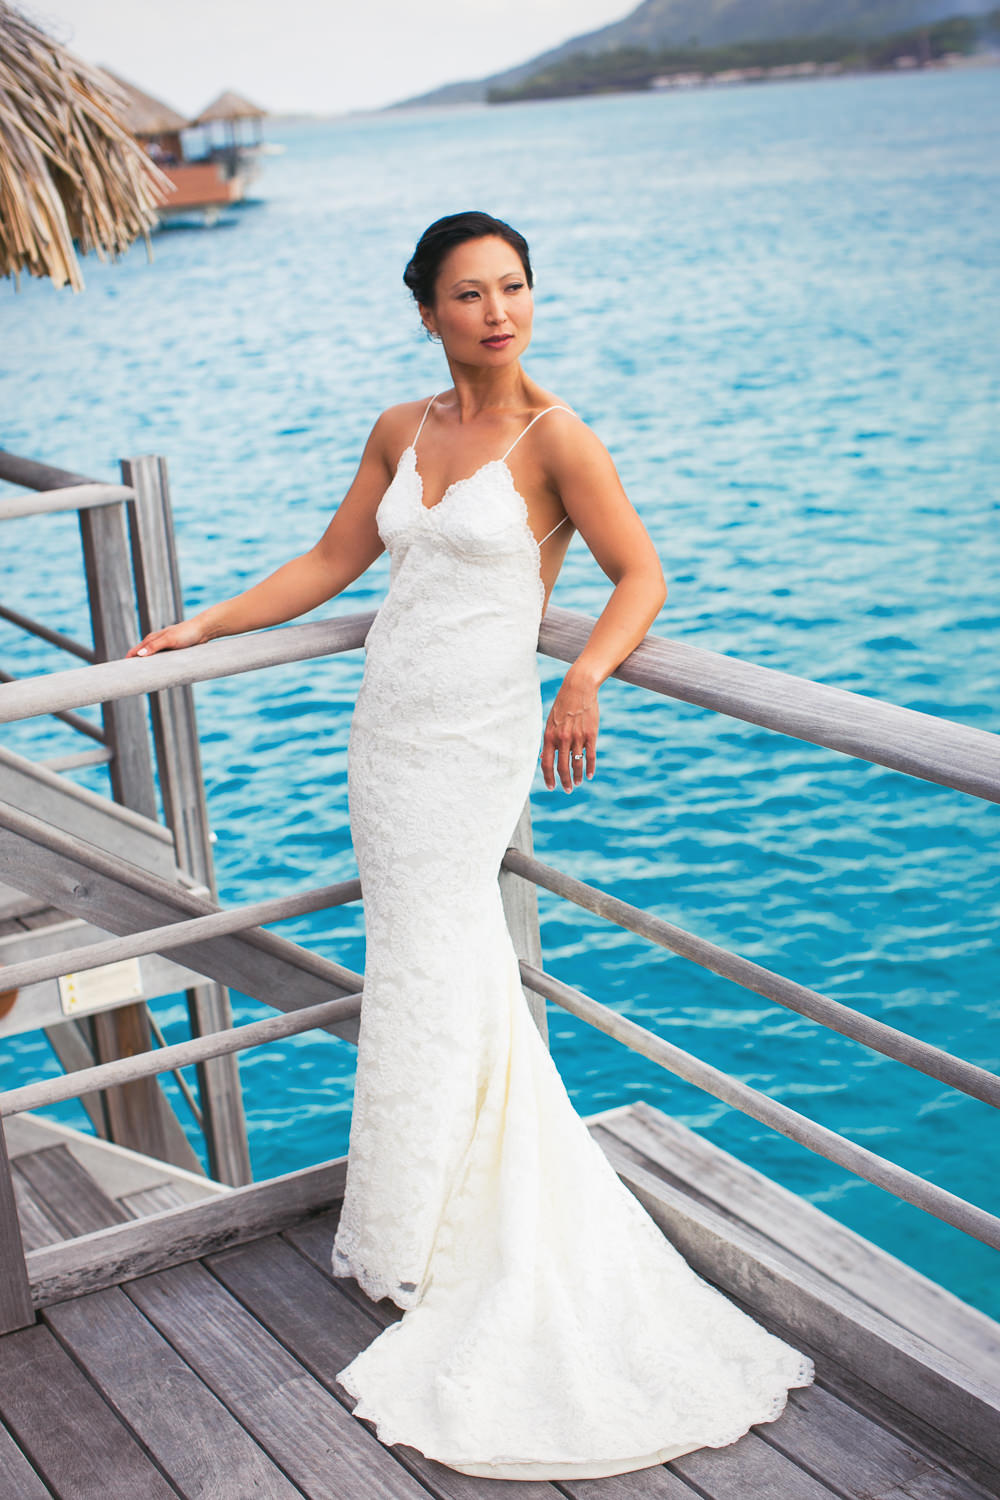 Four Seasons Bora Bora Wedding - Bride by the ocean in her wedding dress